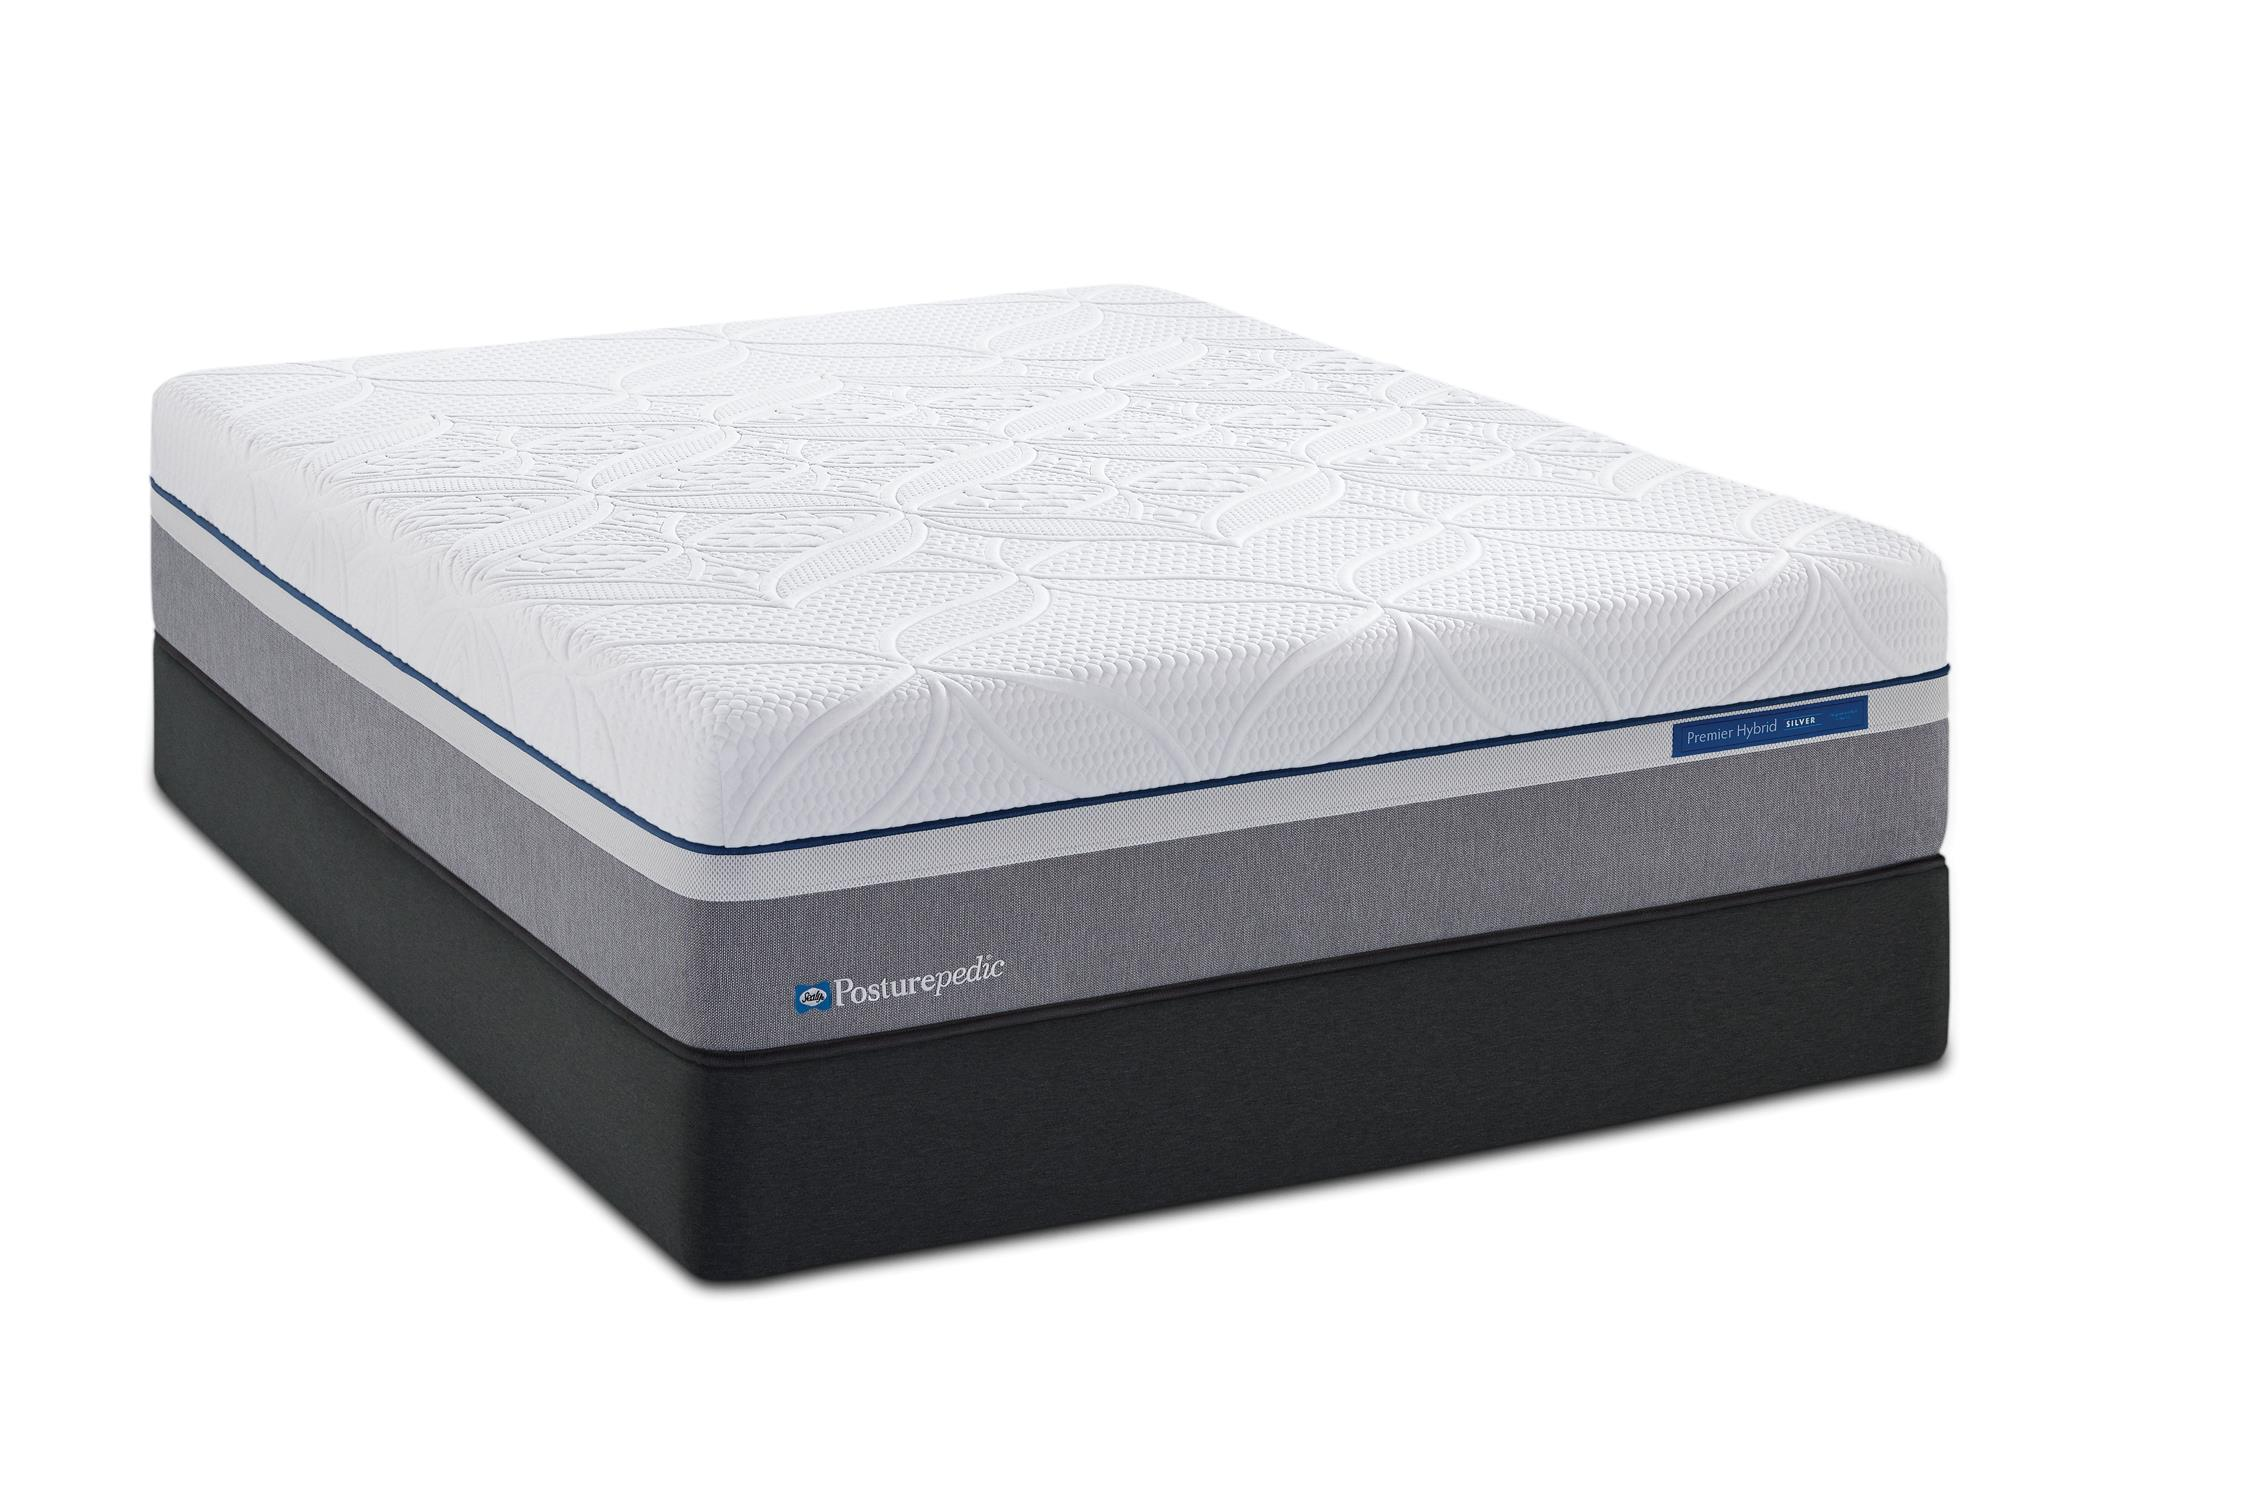 Sealy Hybrid Copper Twin XL Plush Hybrid Mattress LP Set - Item Number: PlushHybrid-TXL+613792-TXLK